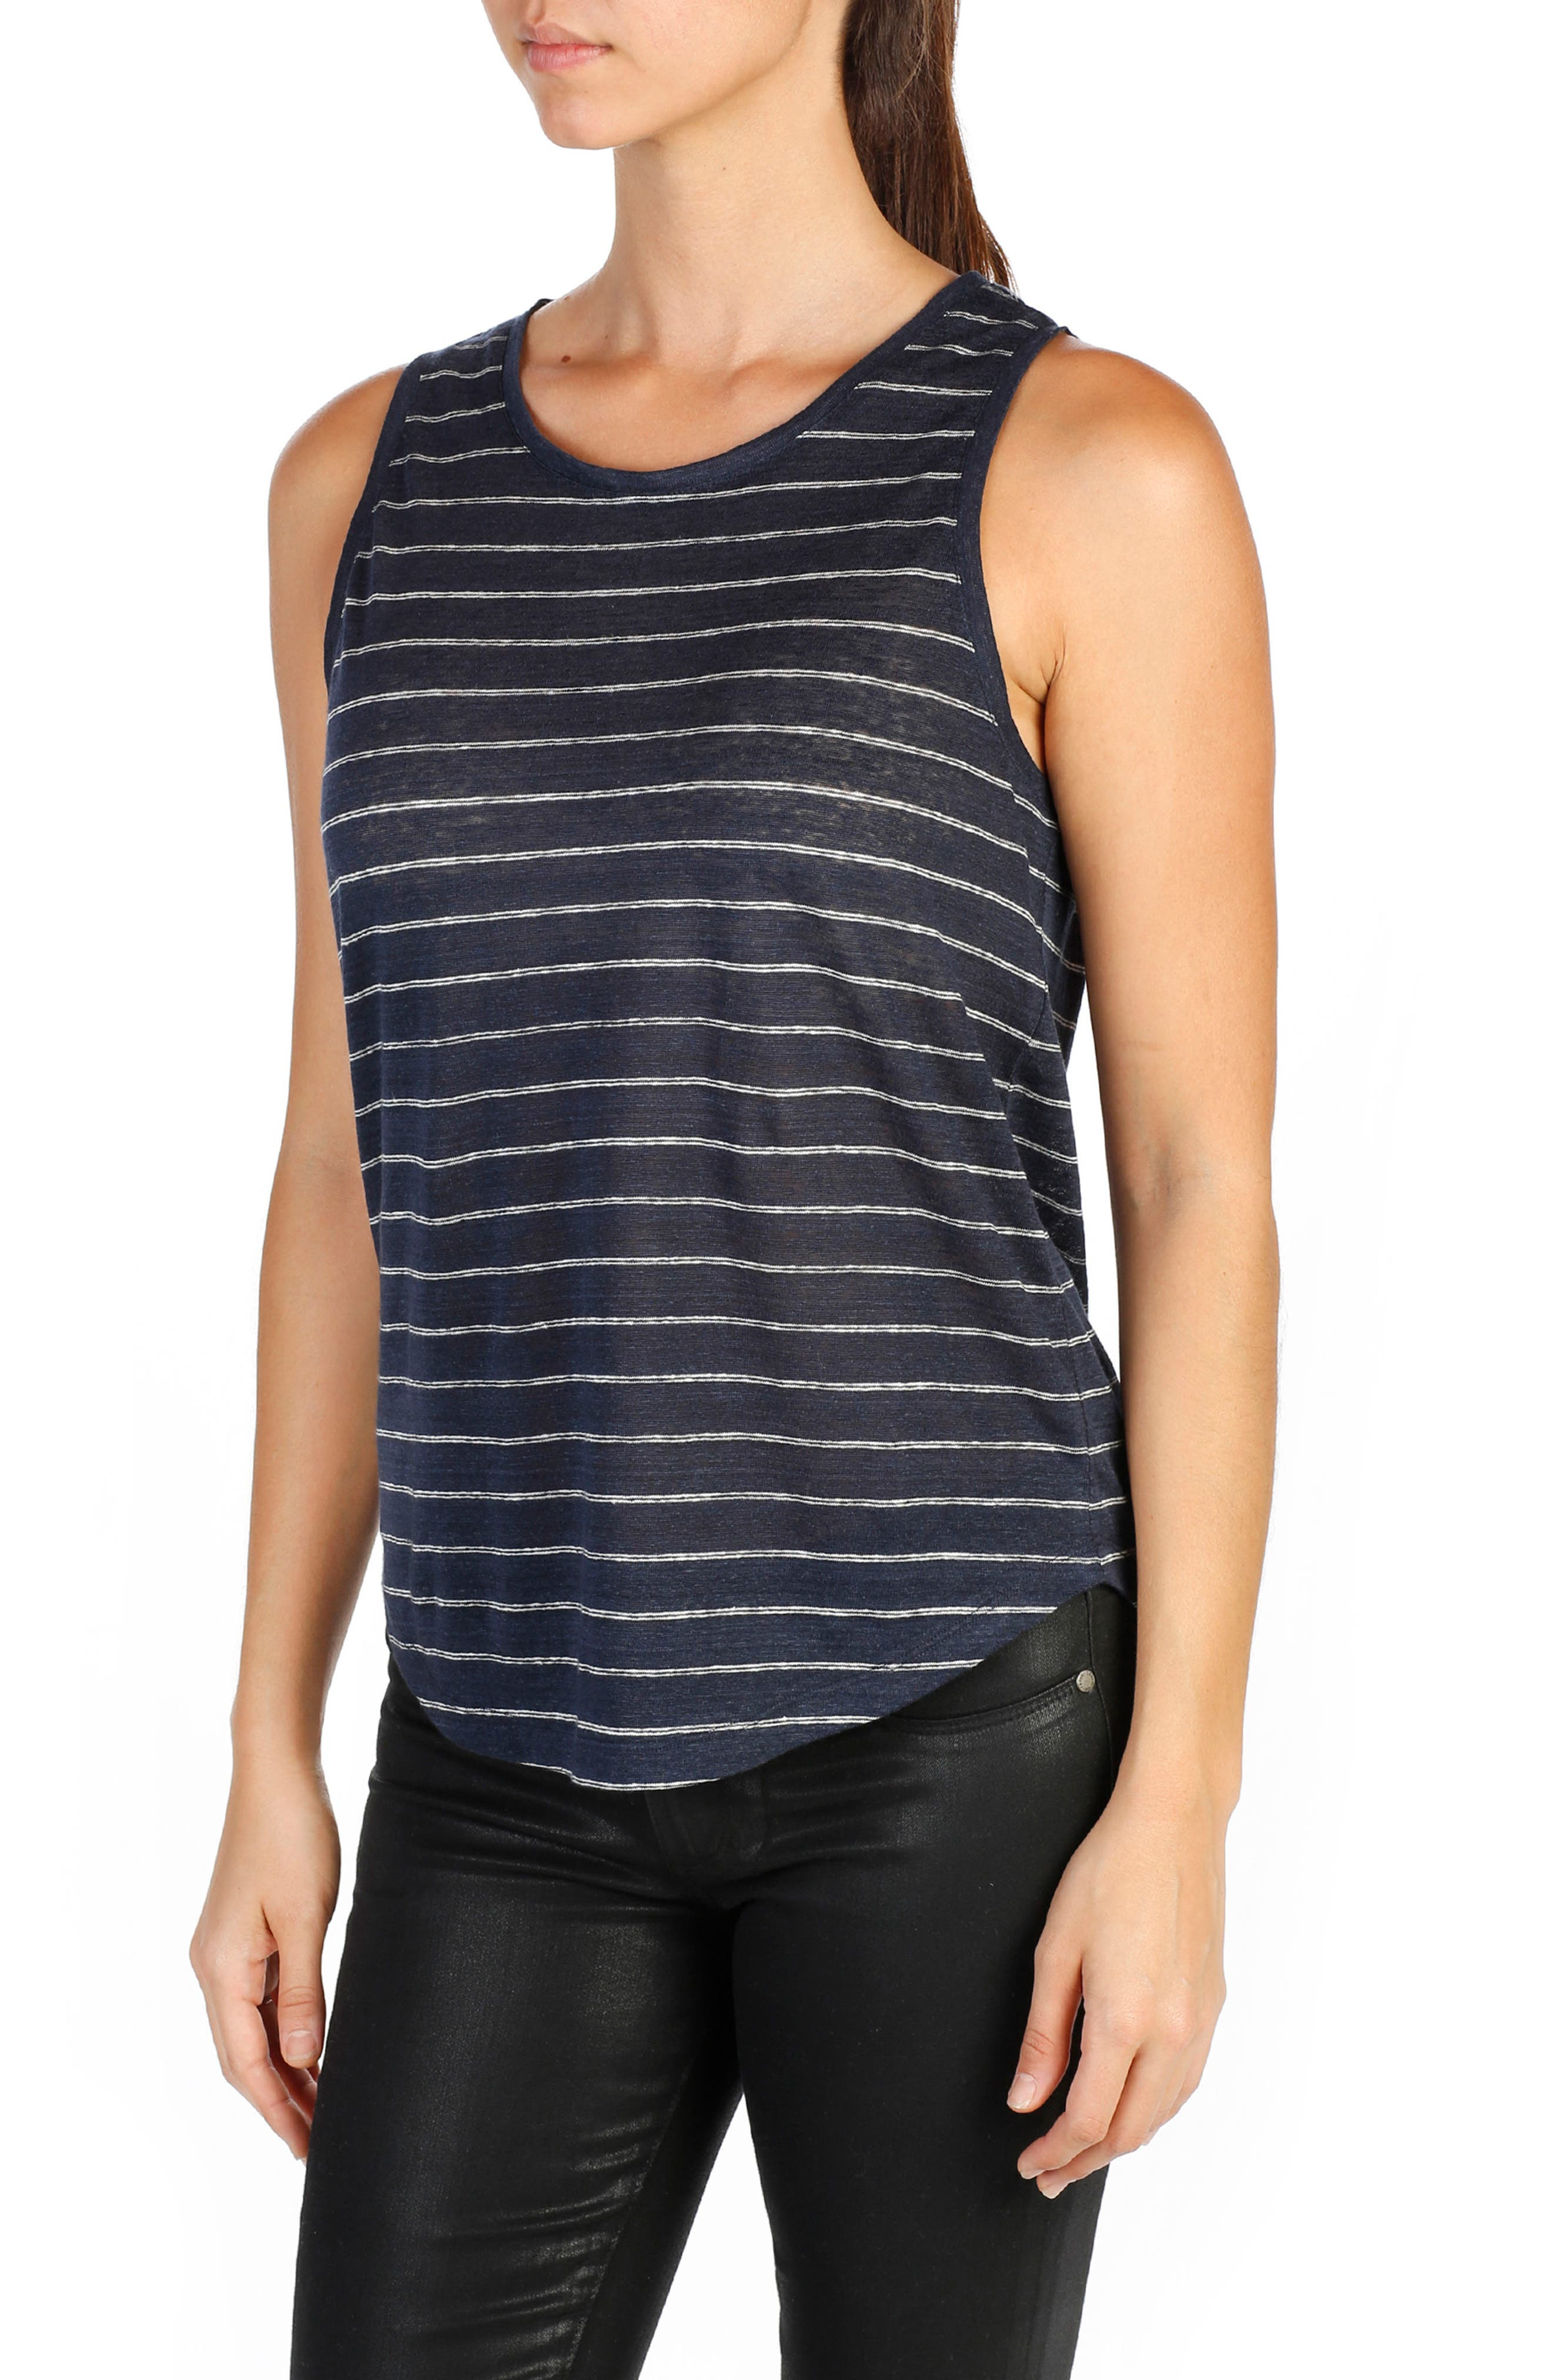 Analia Linen Tank,                         Main,                         color, Dark Ink Blue/ White